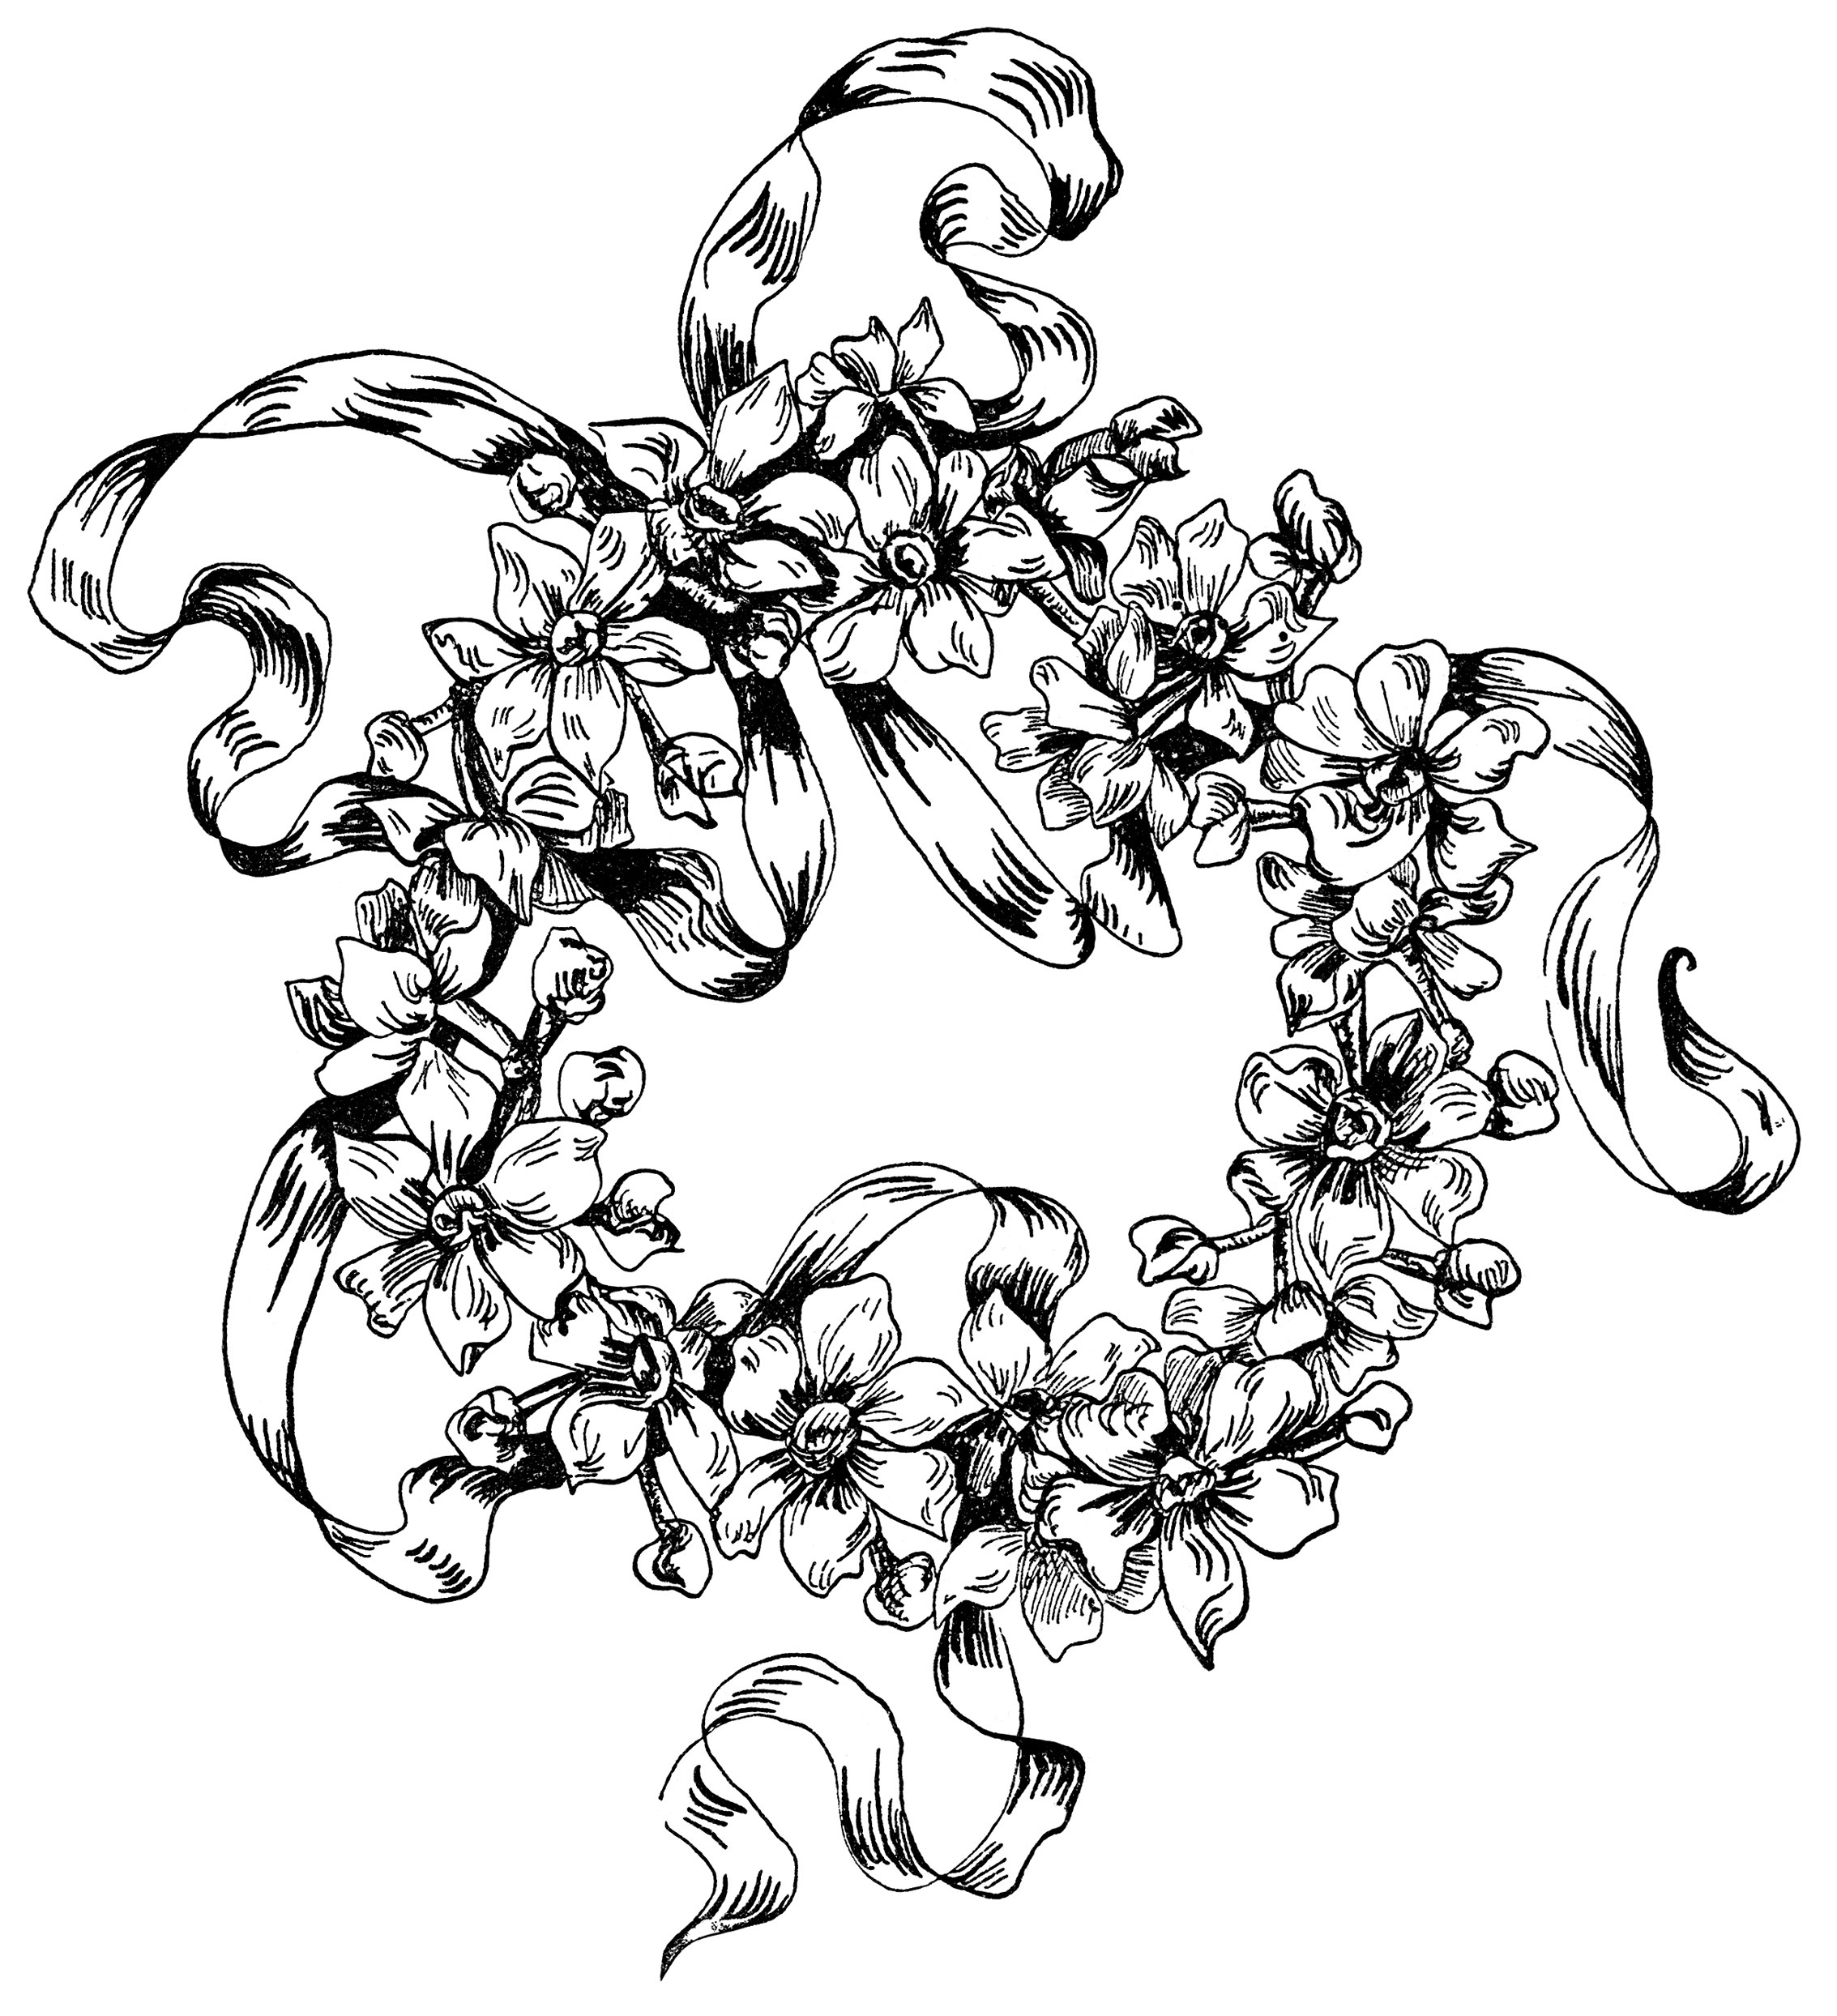 Ornamental flower clipart clipground flower design illustration black and white clipart ornamental mightylinksfo